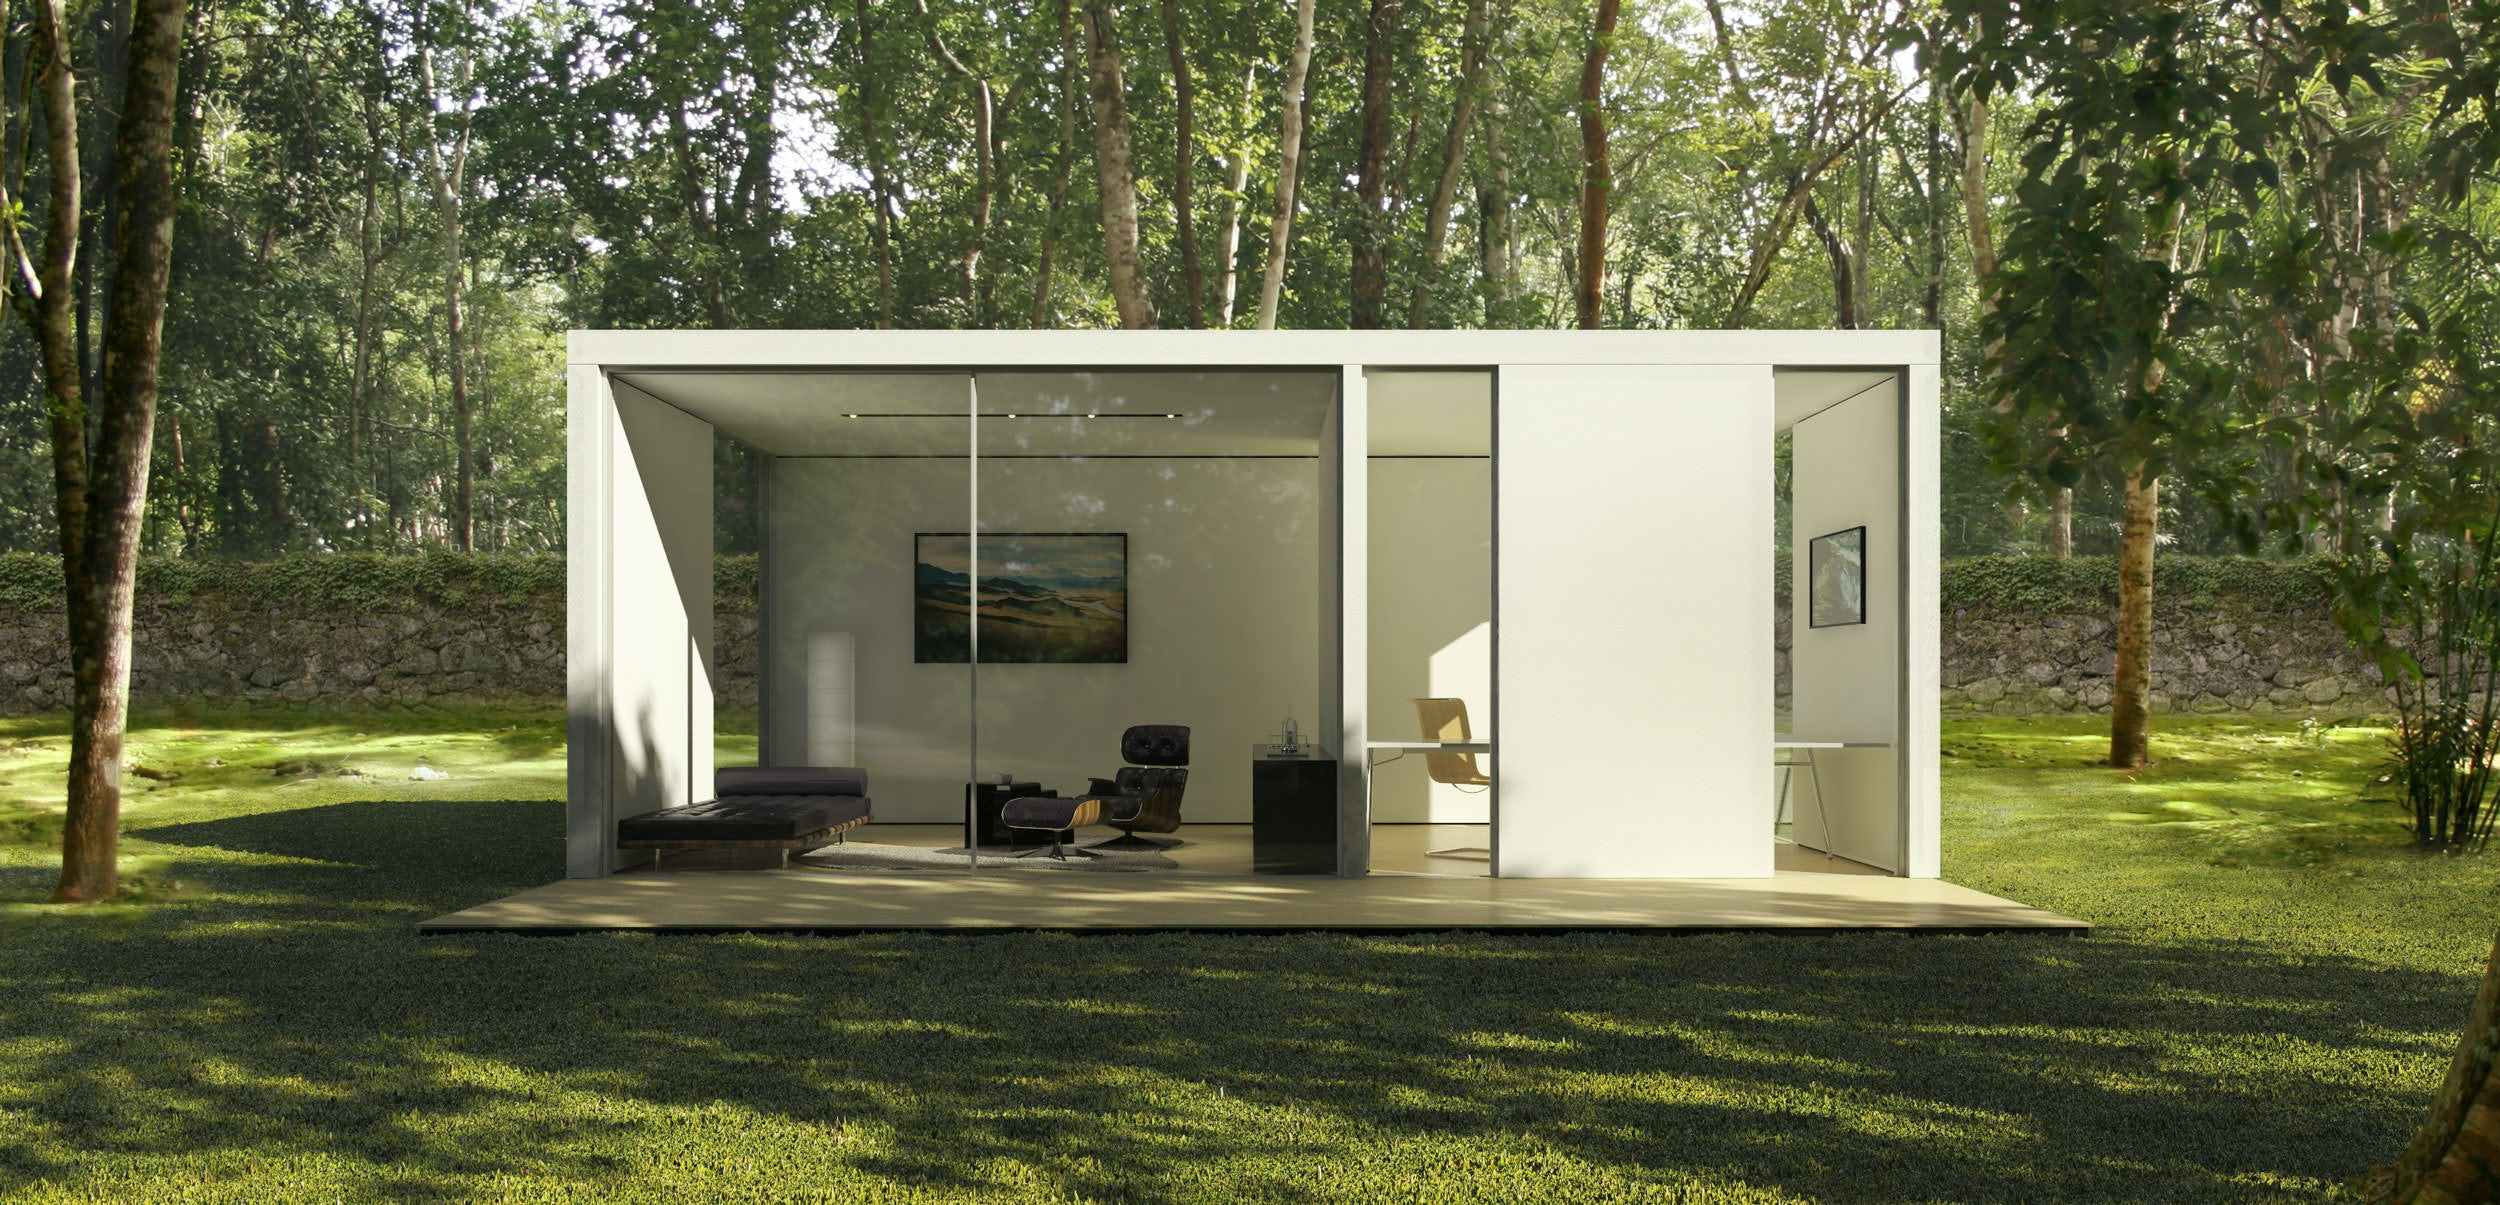 Architectural Details: The Perfect Prefabricated Home